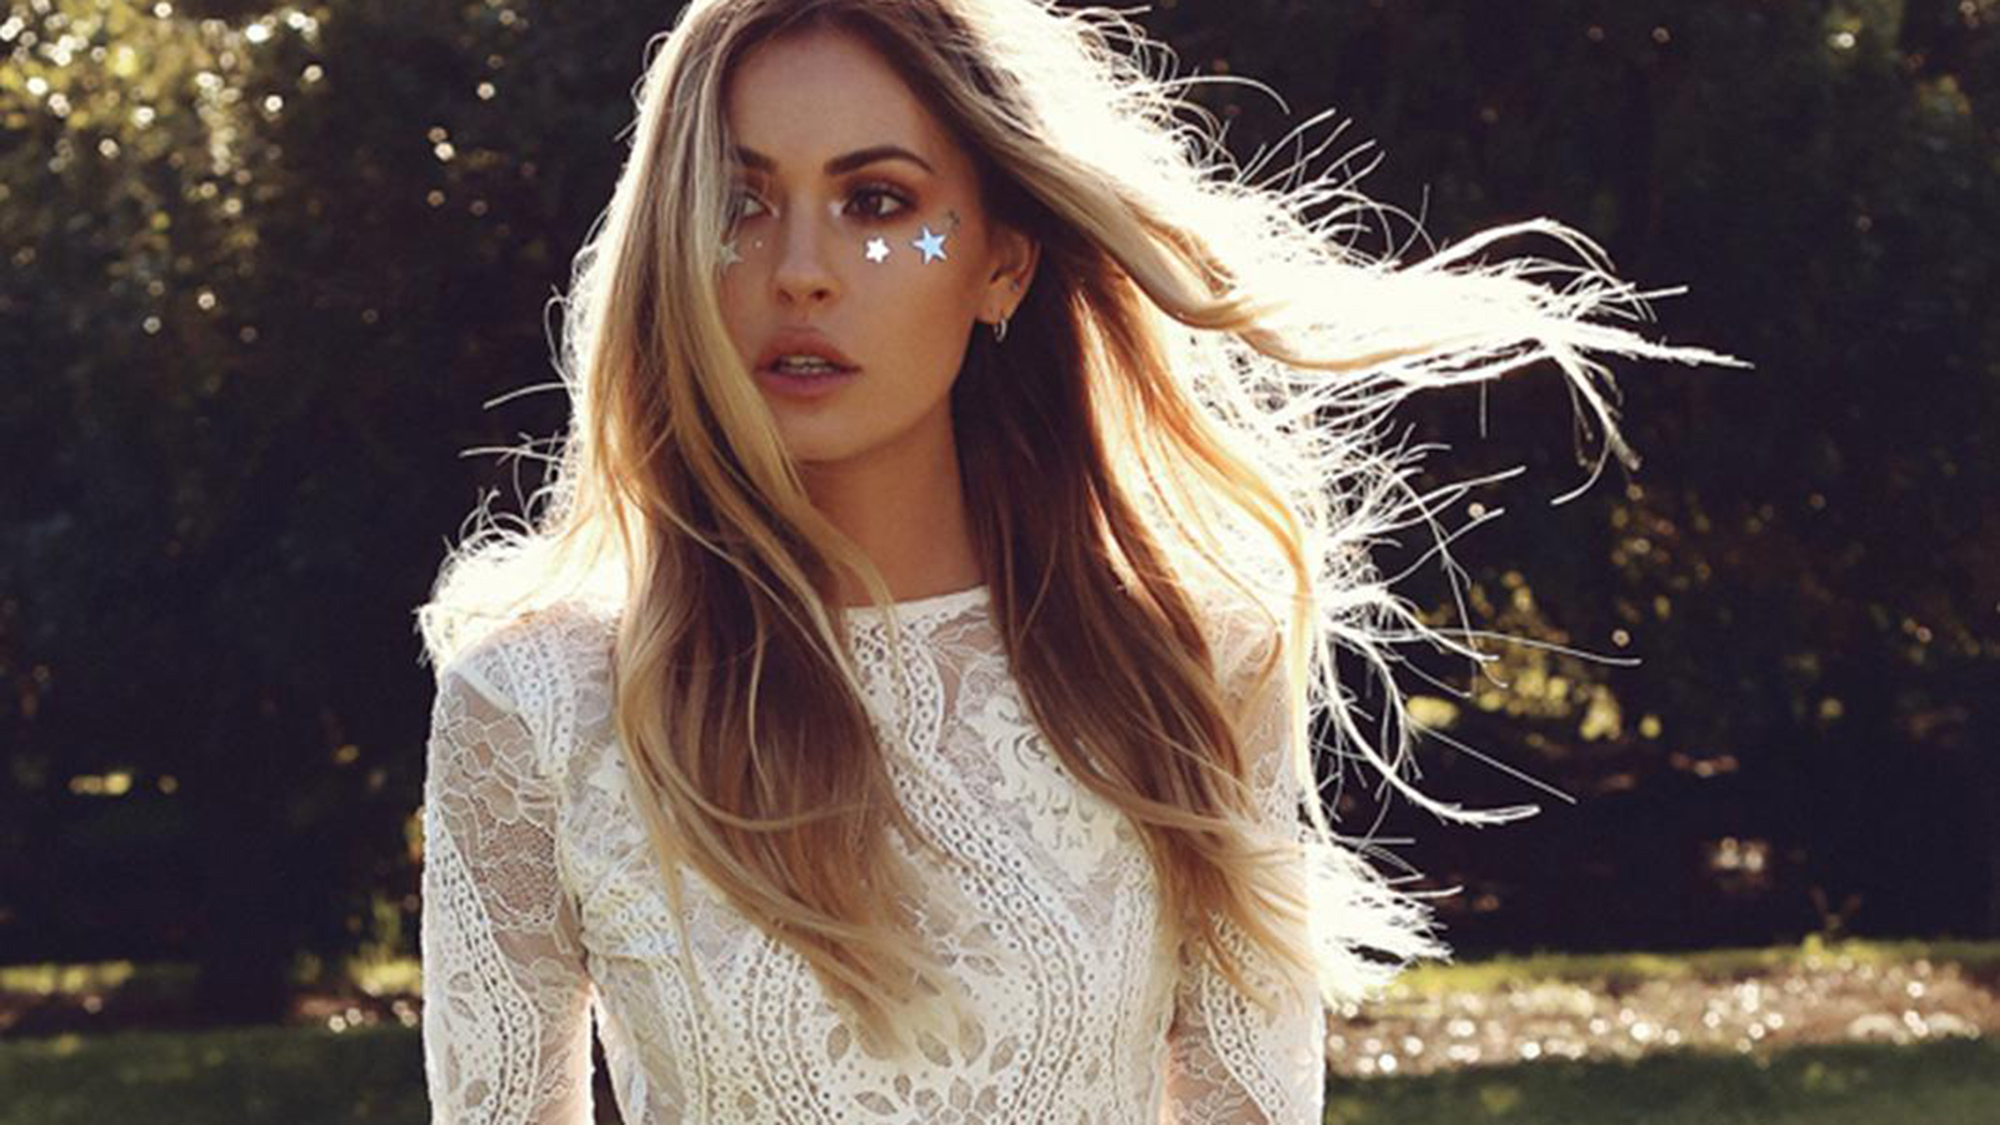 These Are The 5 Most Popular Wedding Dresses On Pinterest